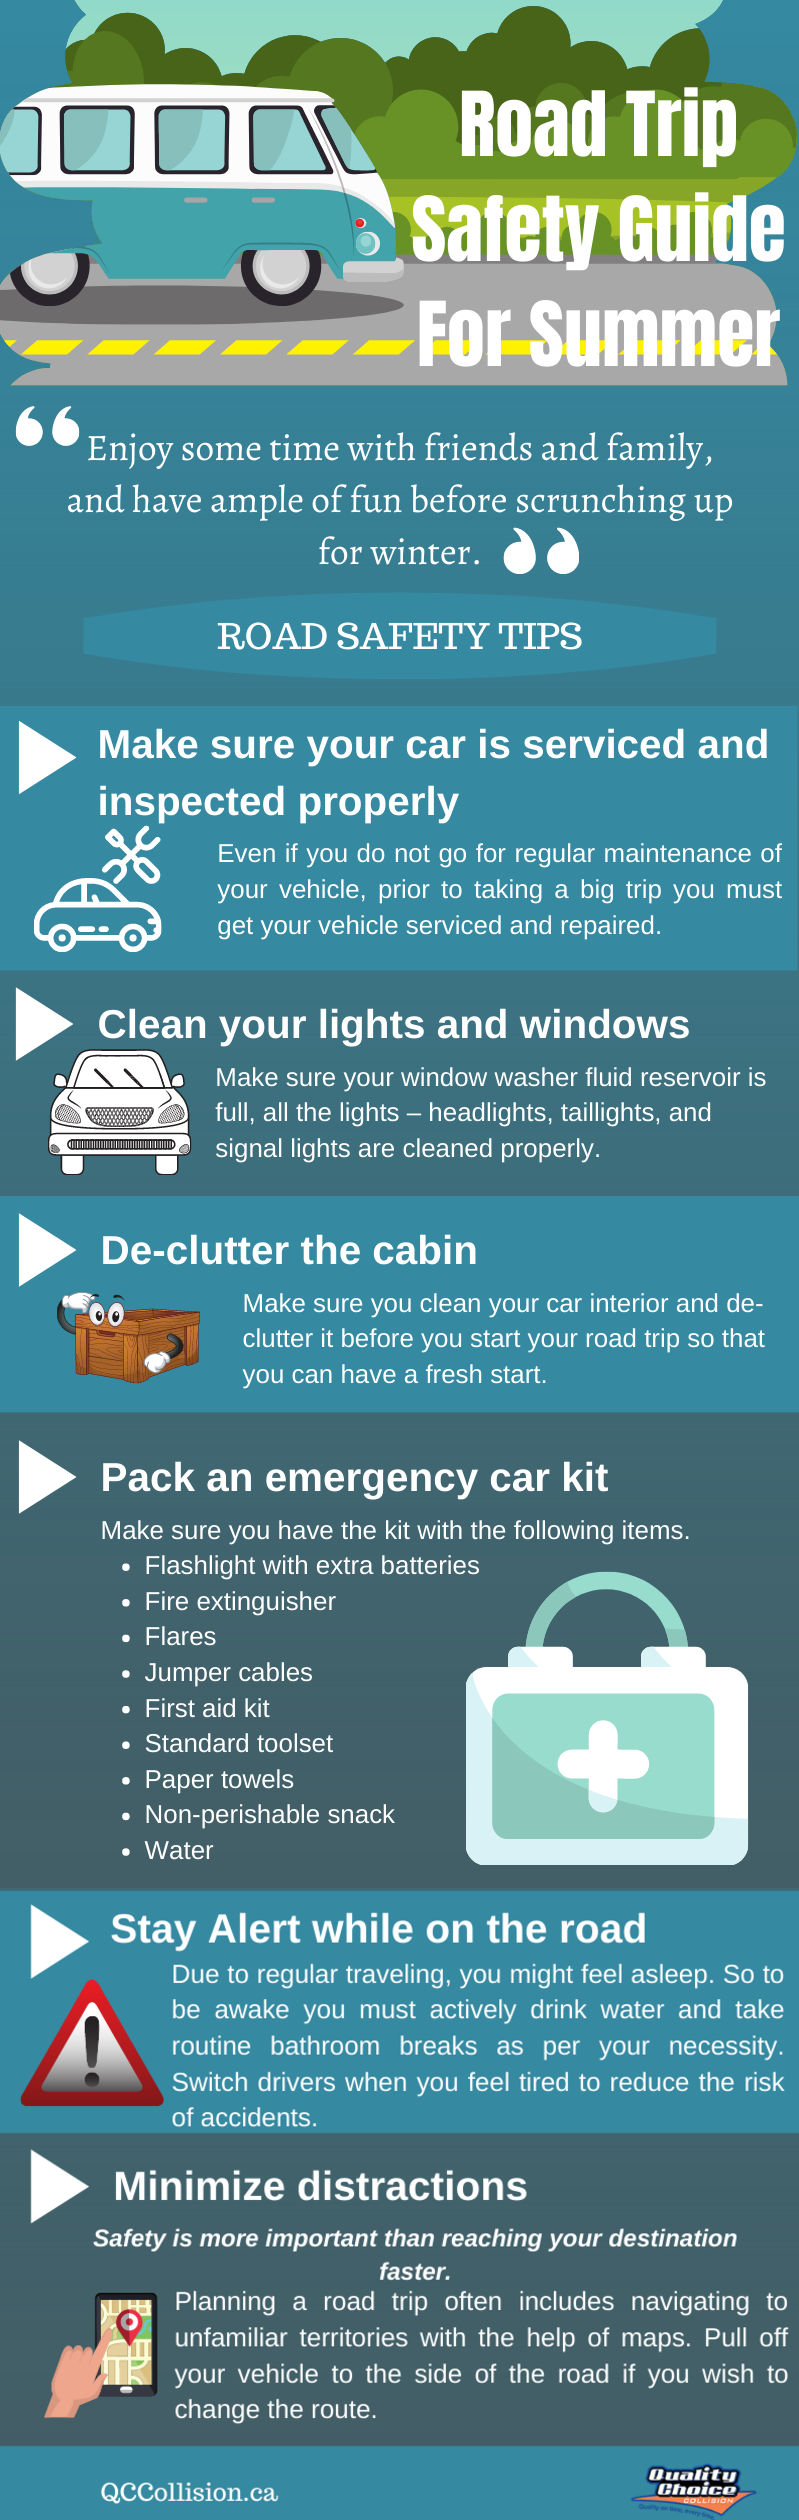 Road Trip Safety Guide For Summer